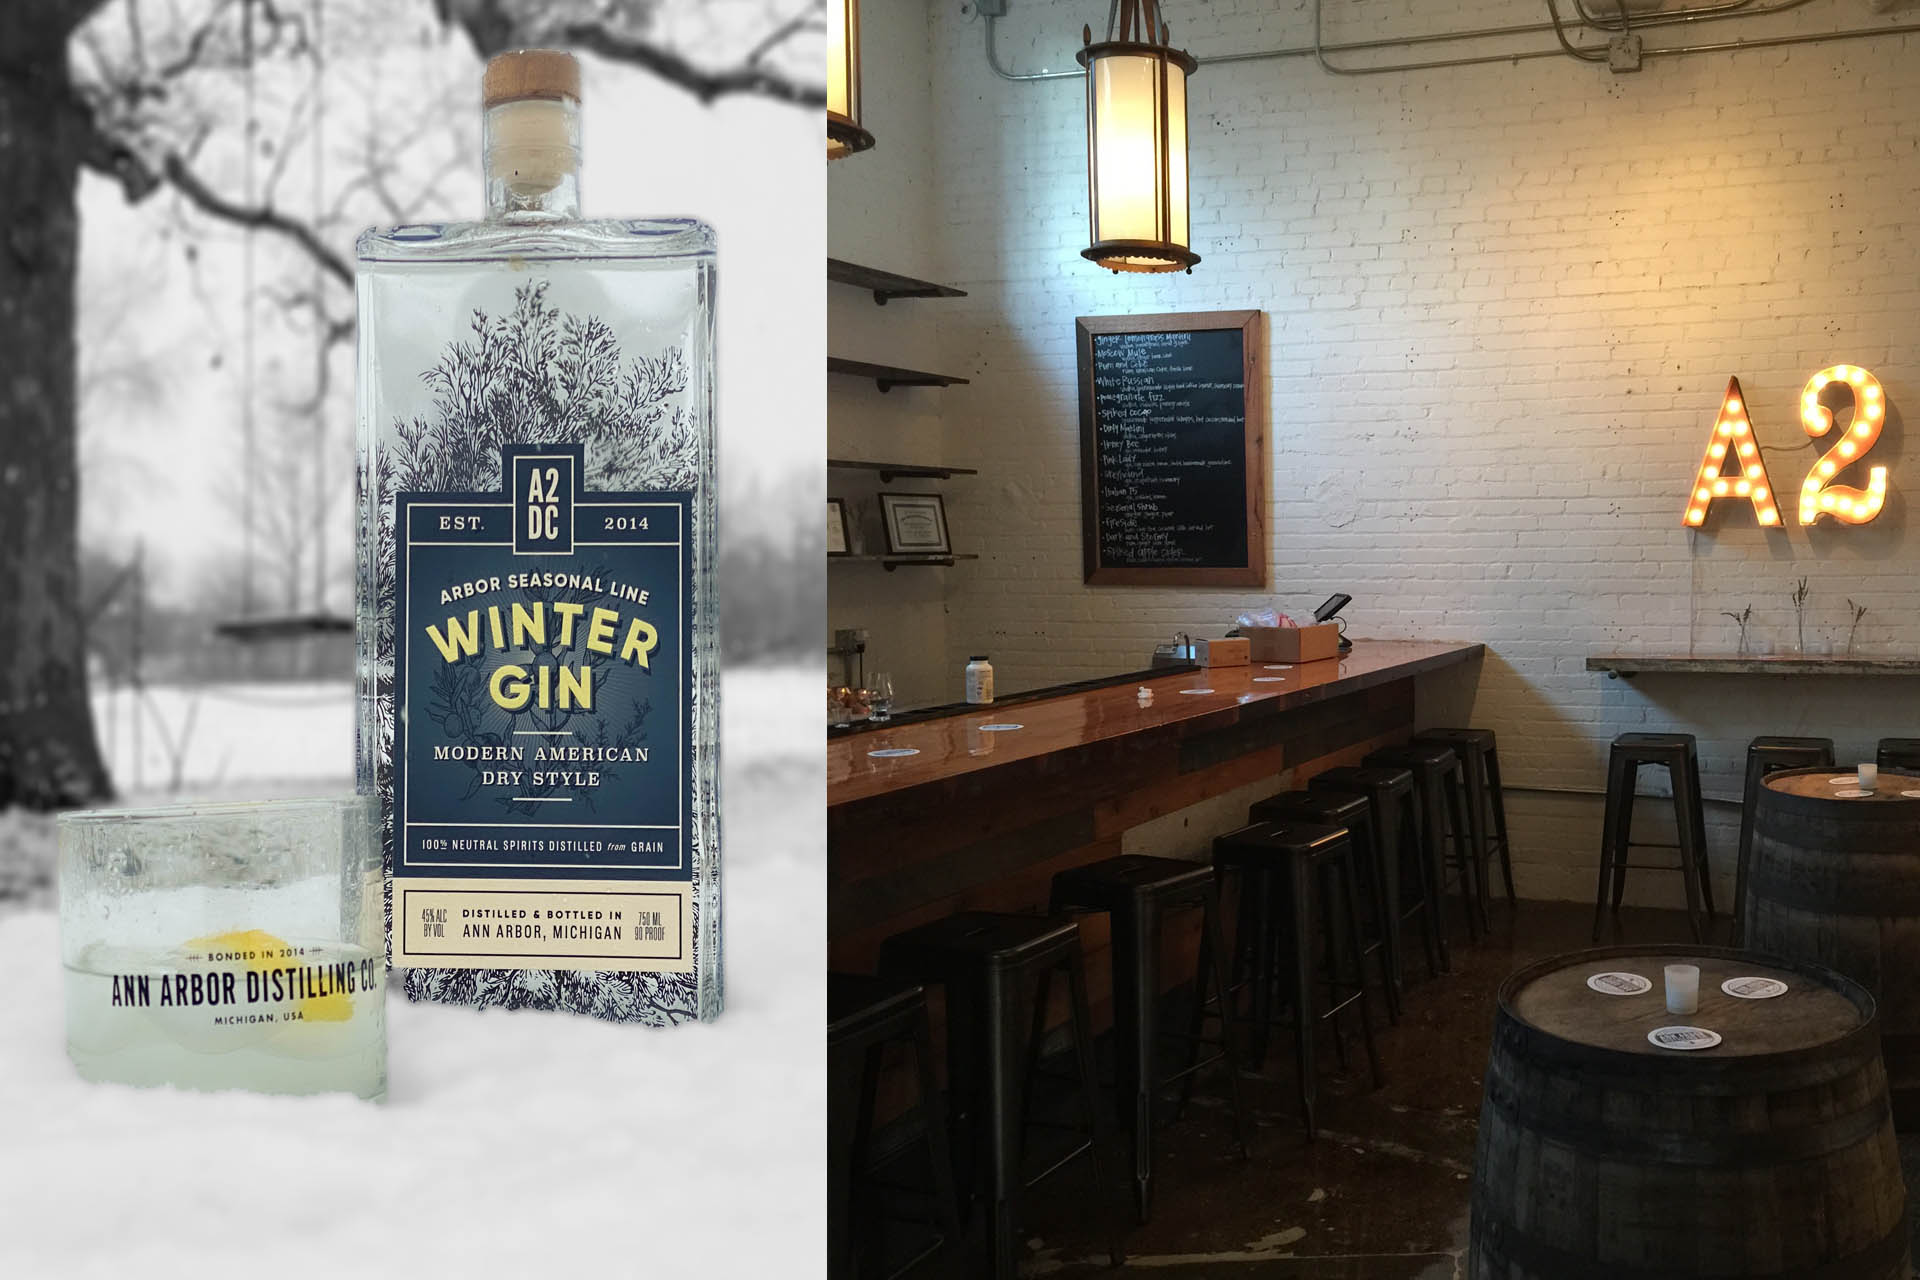 Ann Arbor Distilling's Winter Gin, and indoor of tasting room